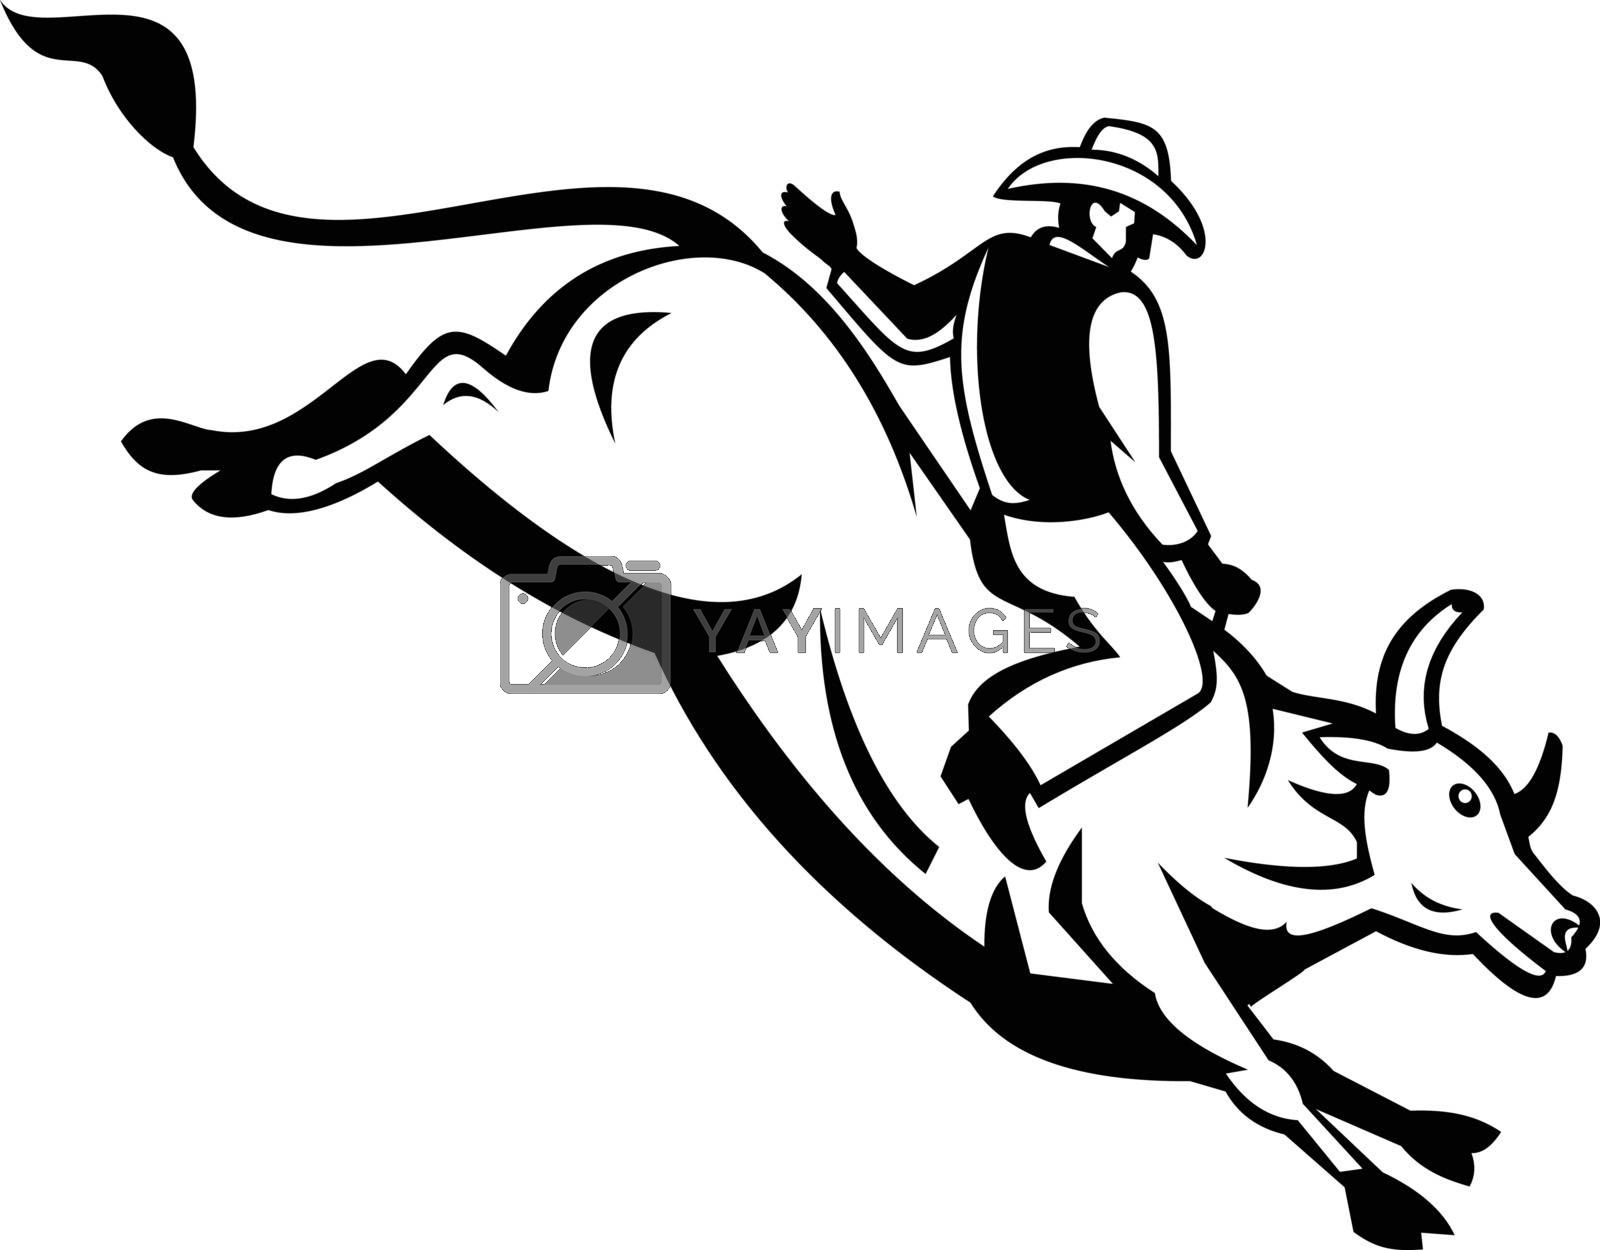 Retro style illustration of an American bull rider riding a bucking bull trying to stay mounted while the animal tries to buck off viewed from side on isolated background done in black and white.